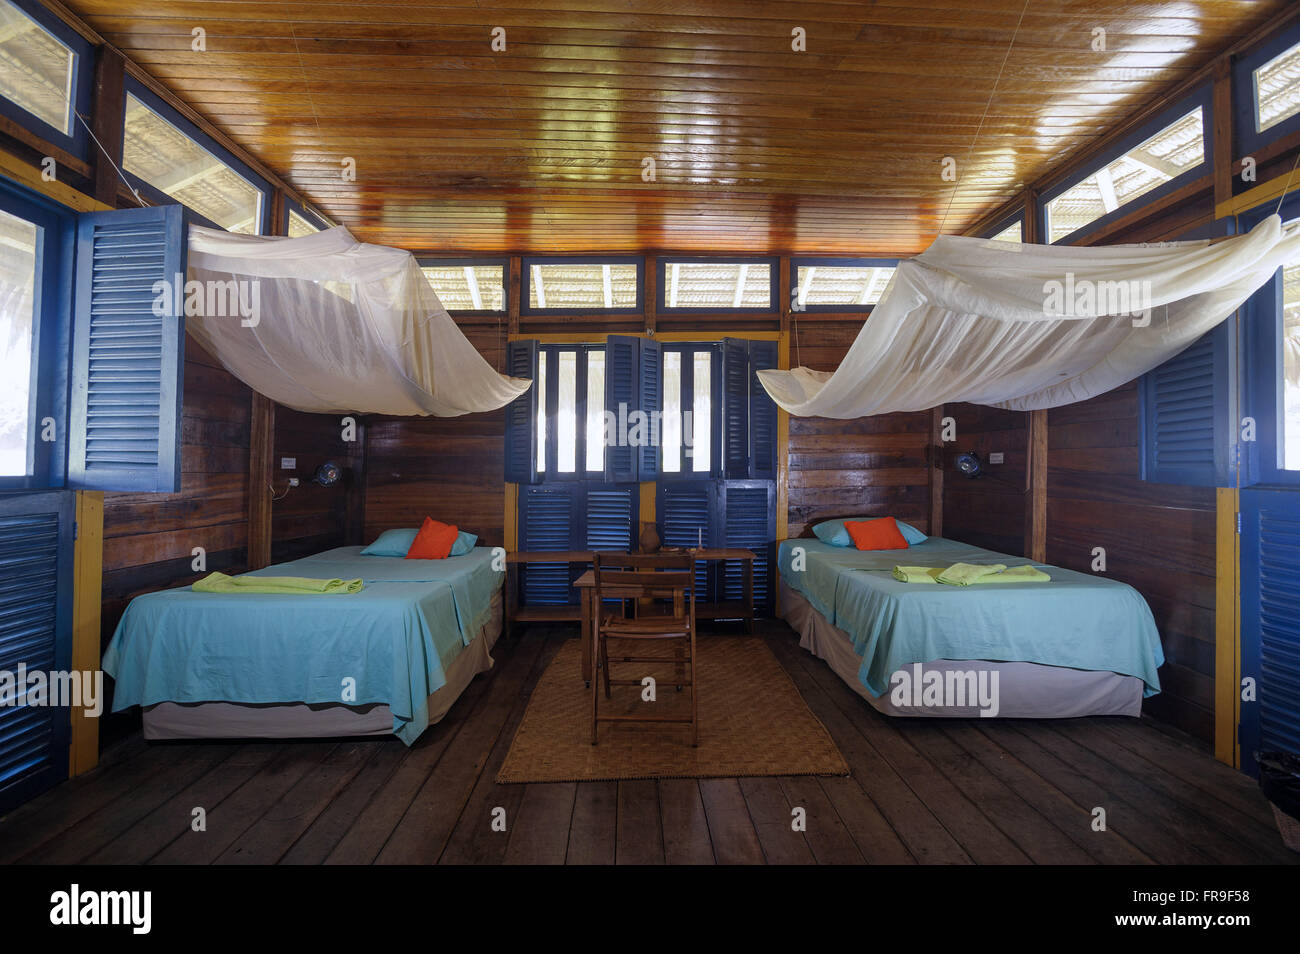 Inside view of one of the bungalows of the floating hostel Uacari - Stock Image